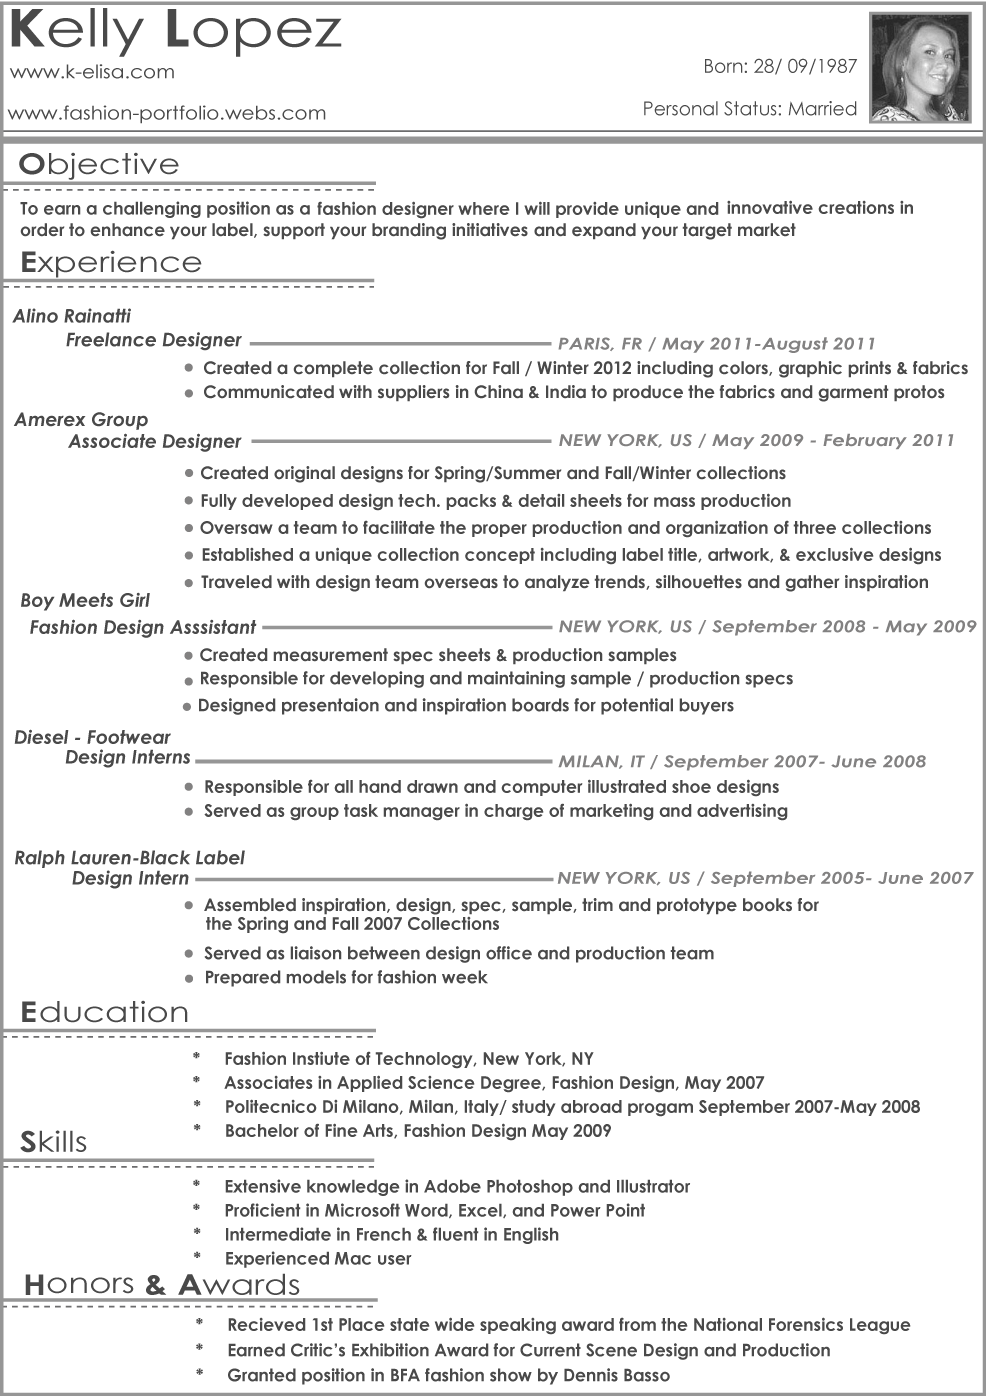 Network Engineer Fresher Resume 2 Camp During Internment Japanese